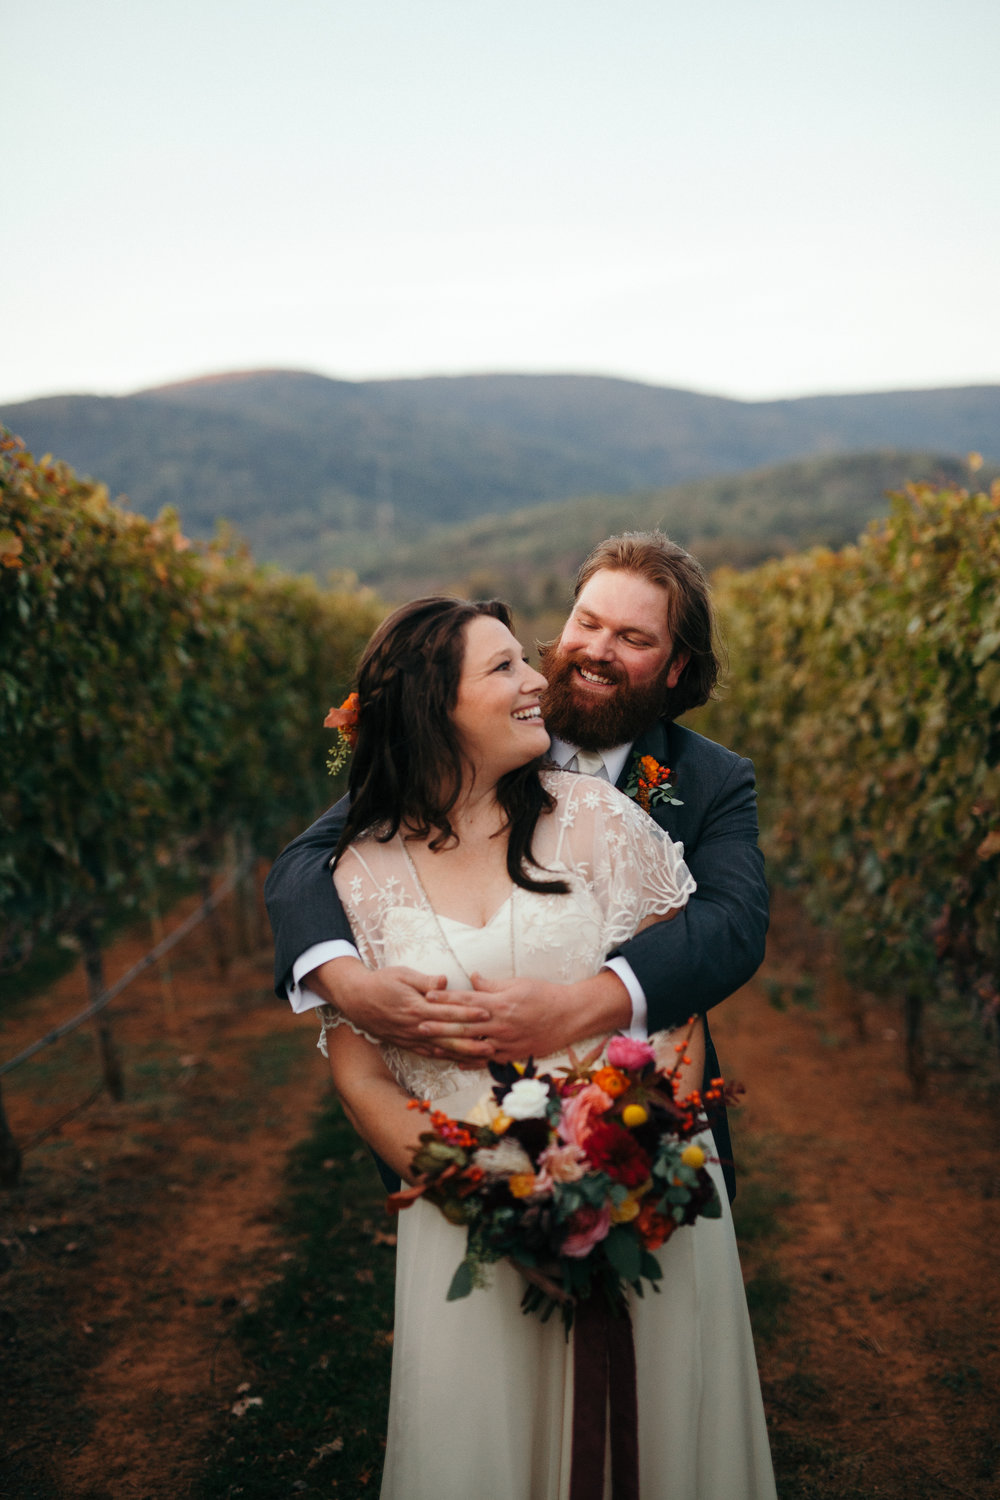 Vibrant Fall Wedding in the Mountains